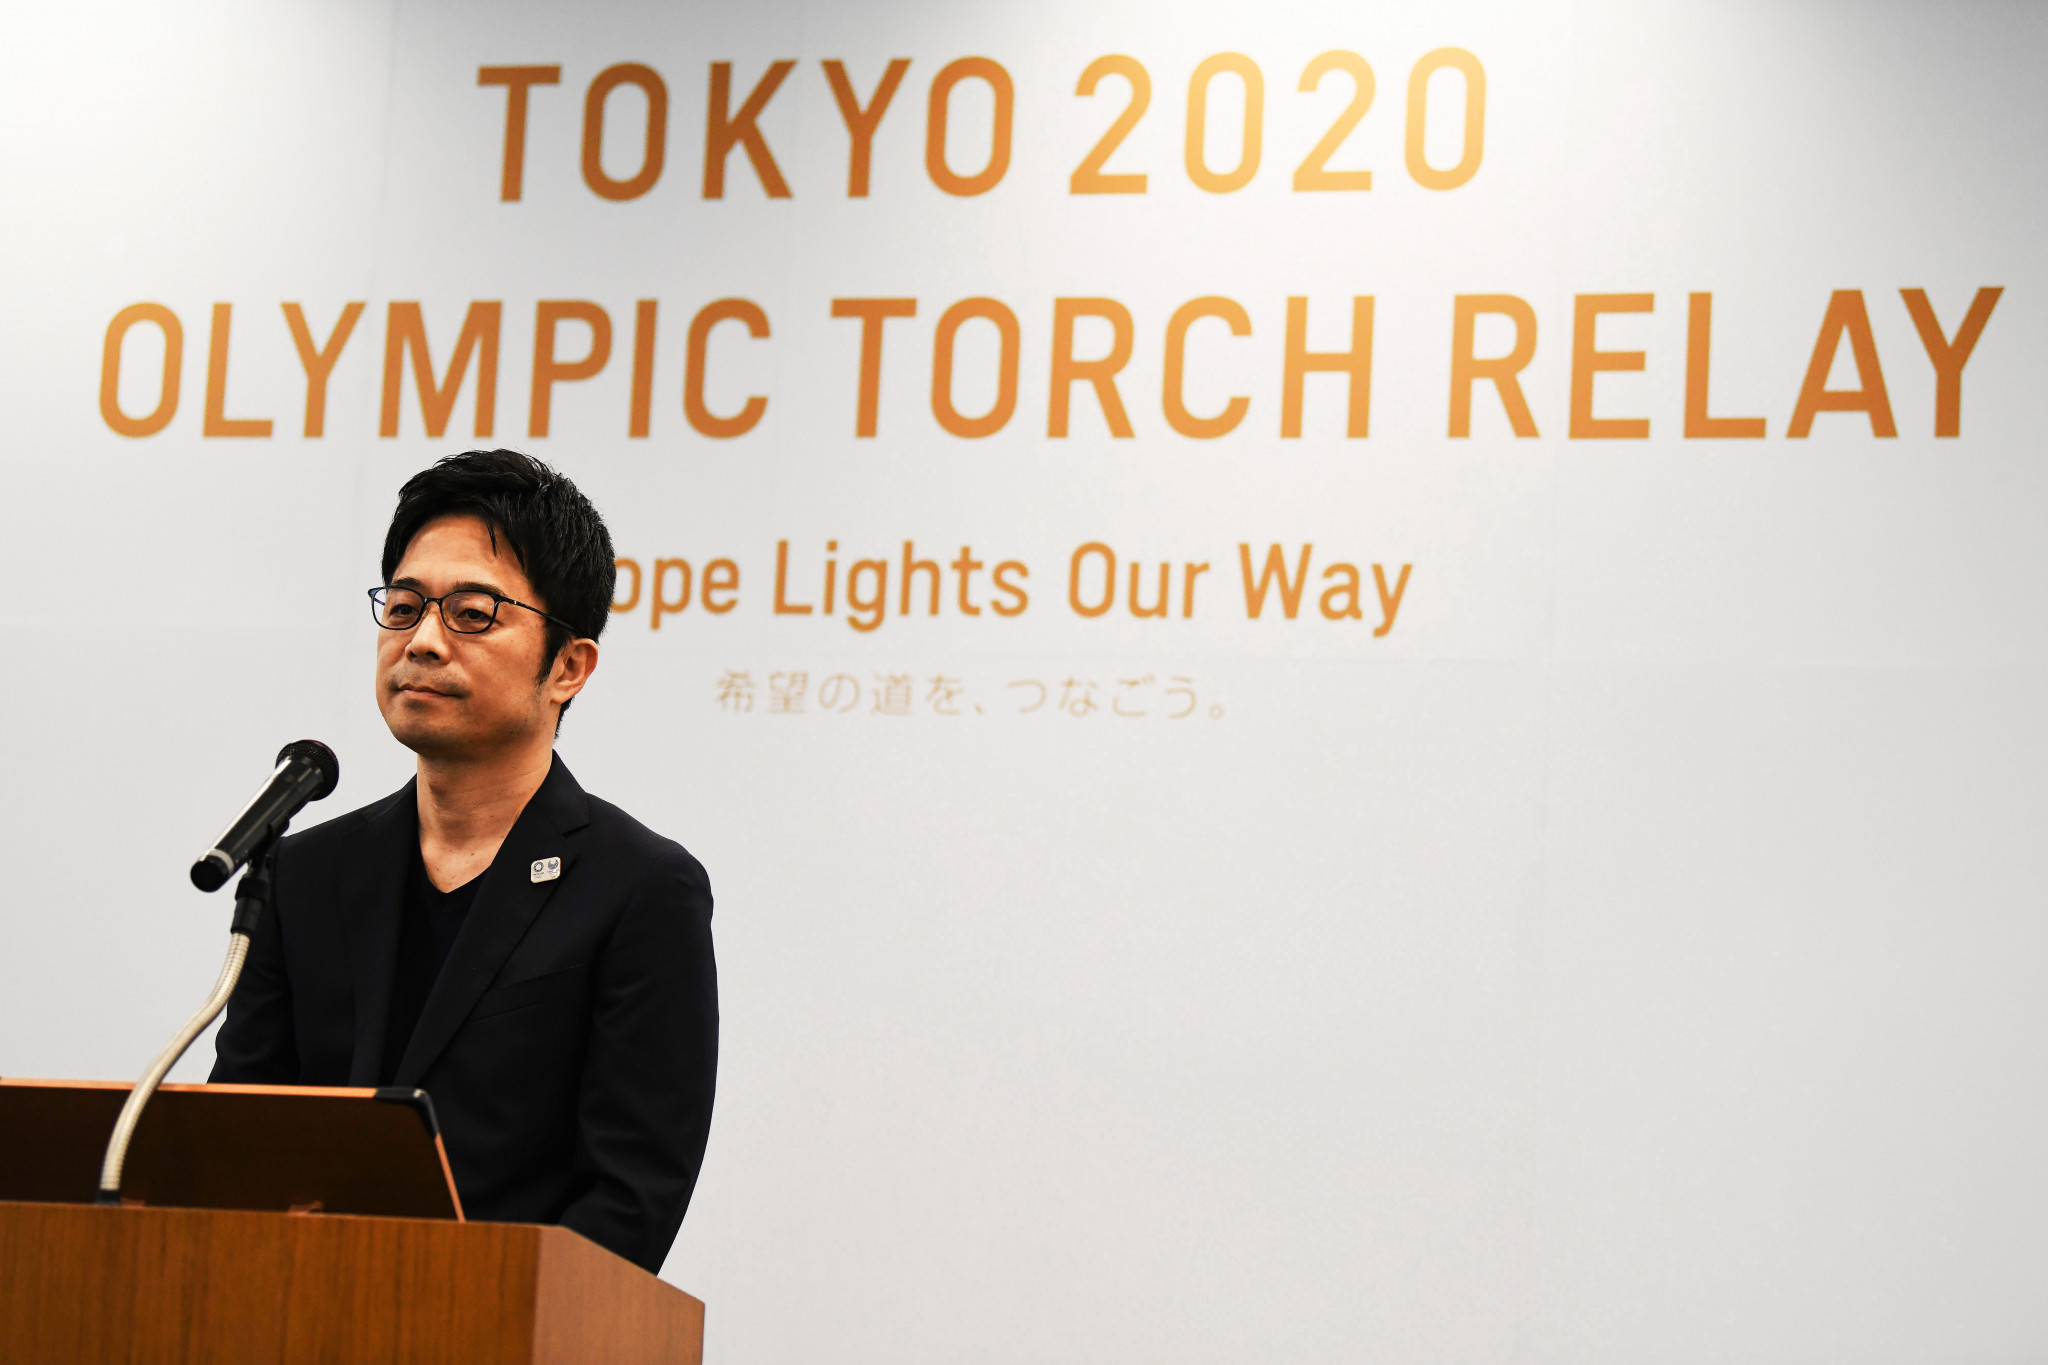 Tokyo 2020 Torch designer creates DIY face visor to help protect health workers